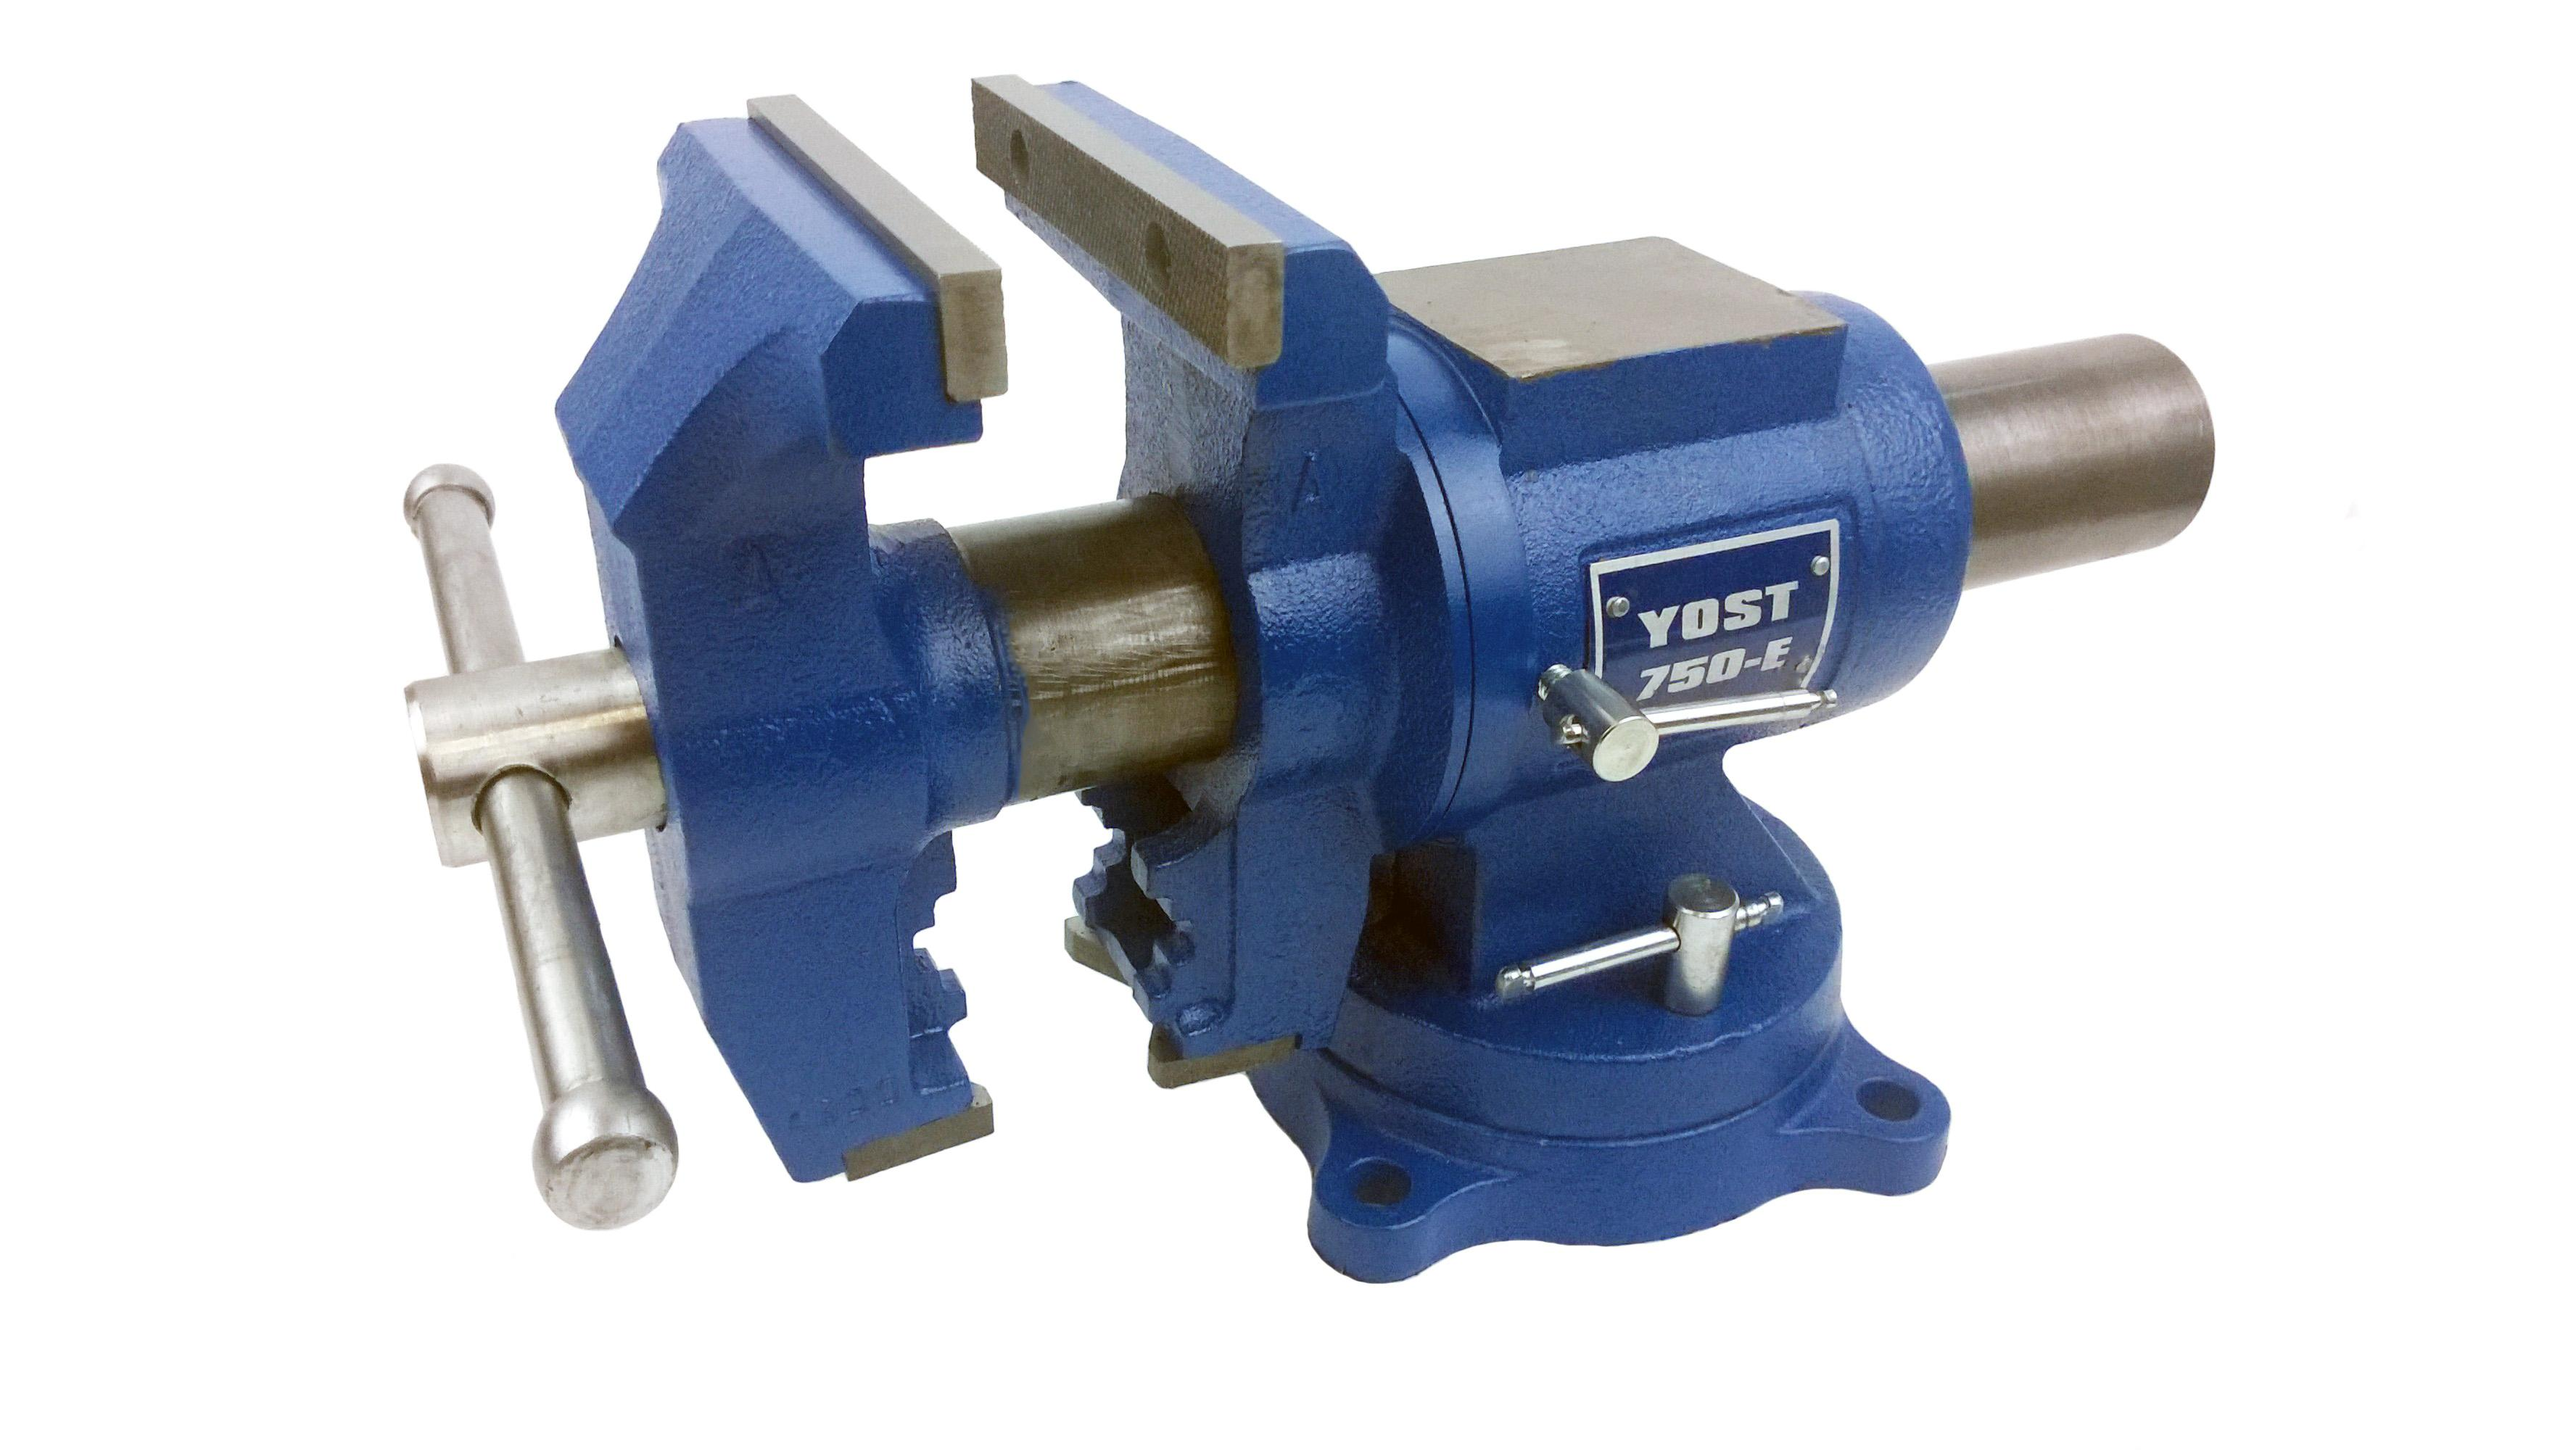 Yost 750-E Rotating Bench Vise: Amazon.com: Industrial & Scientific